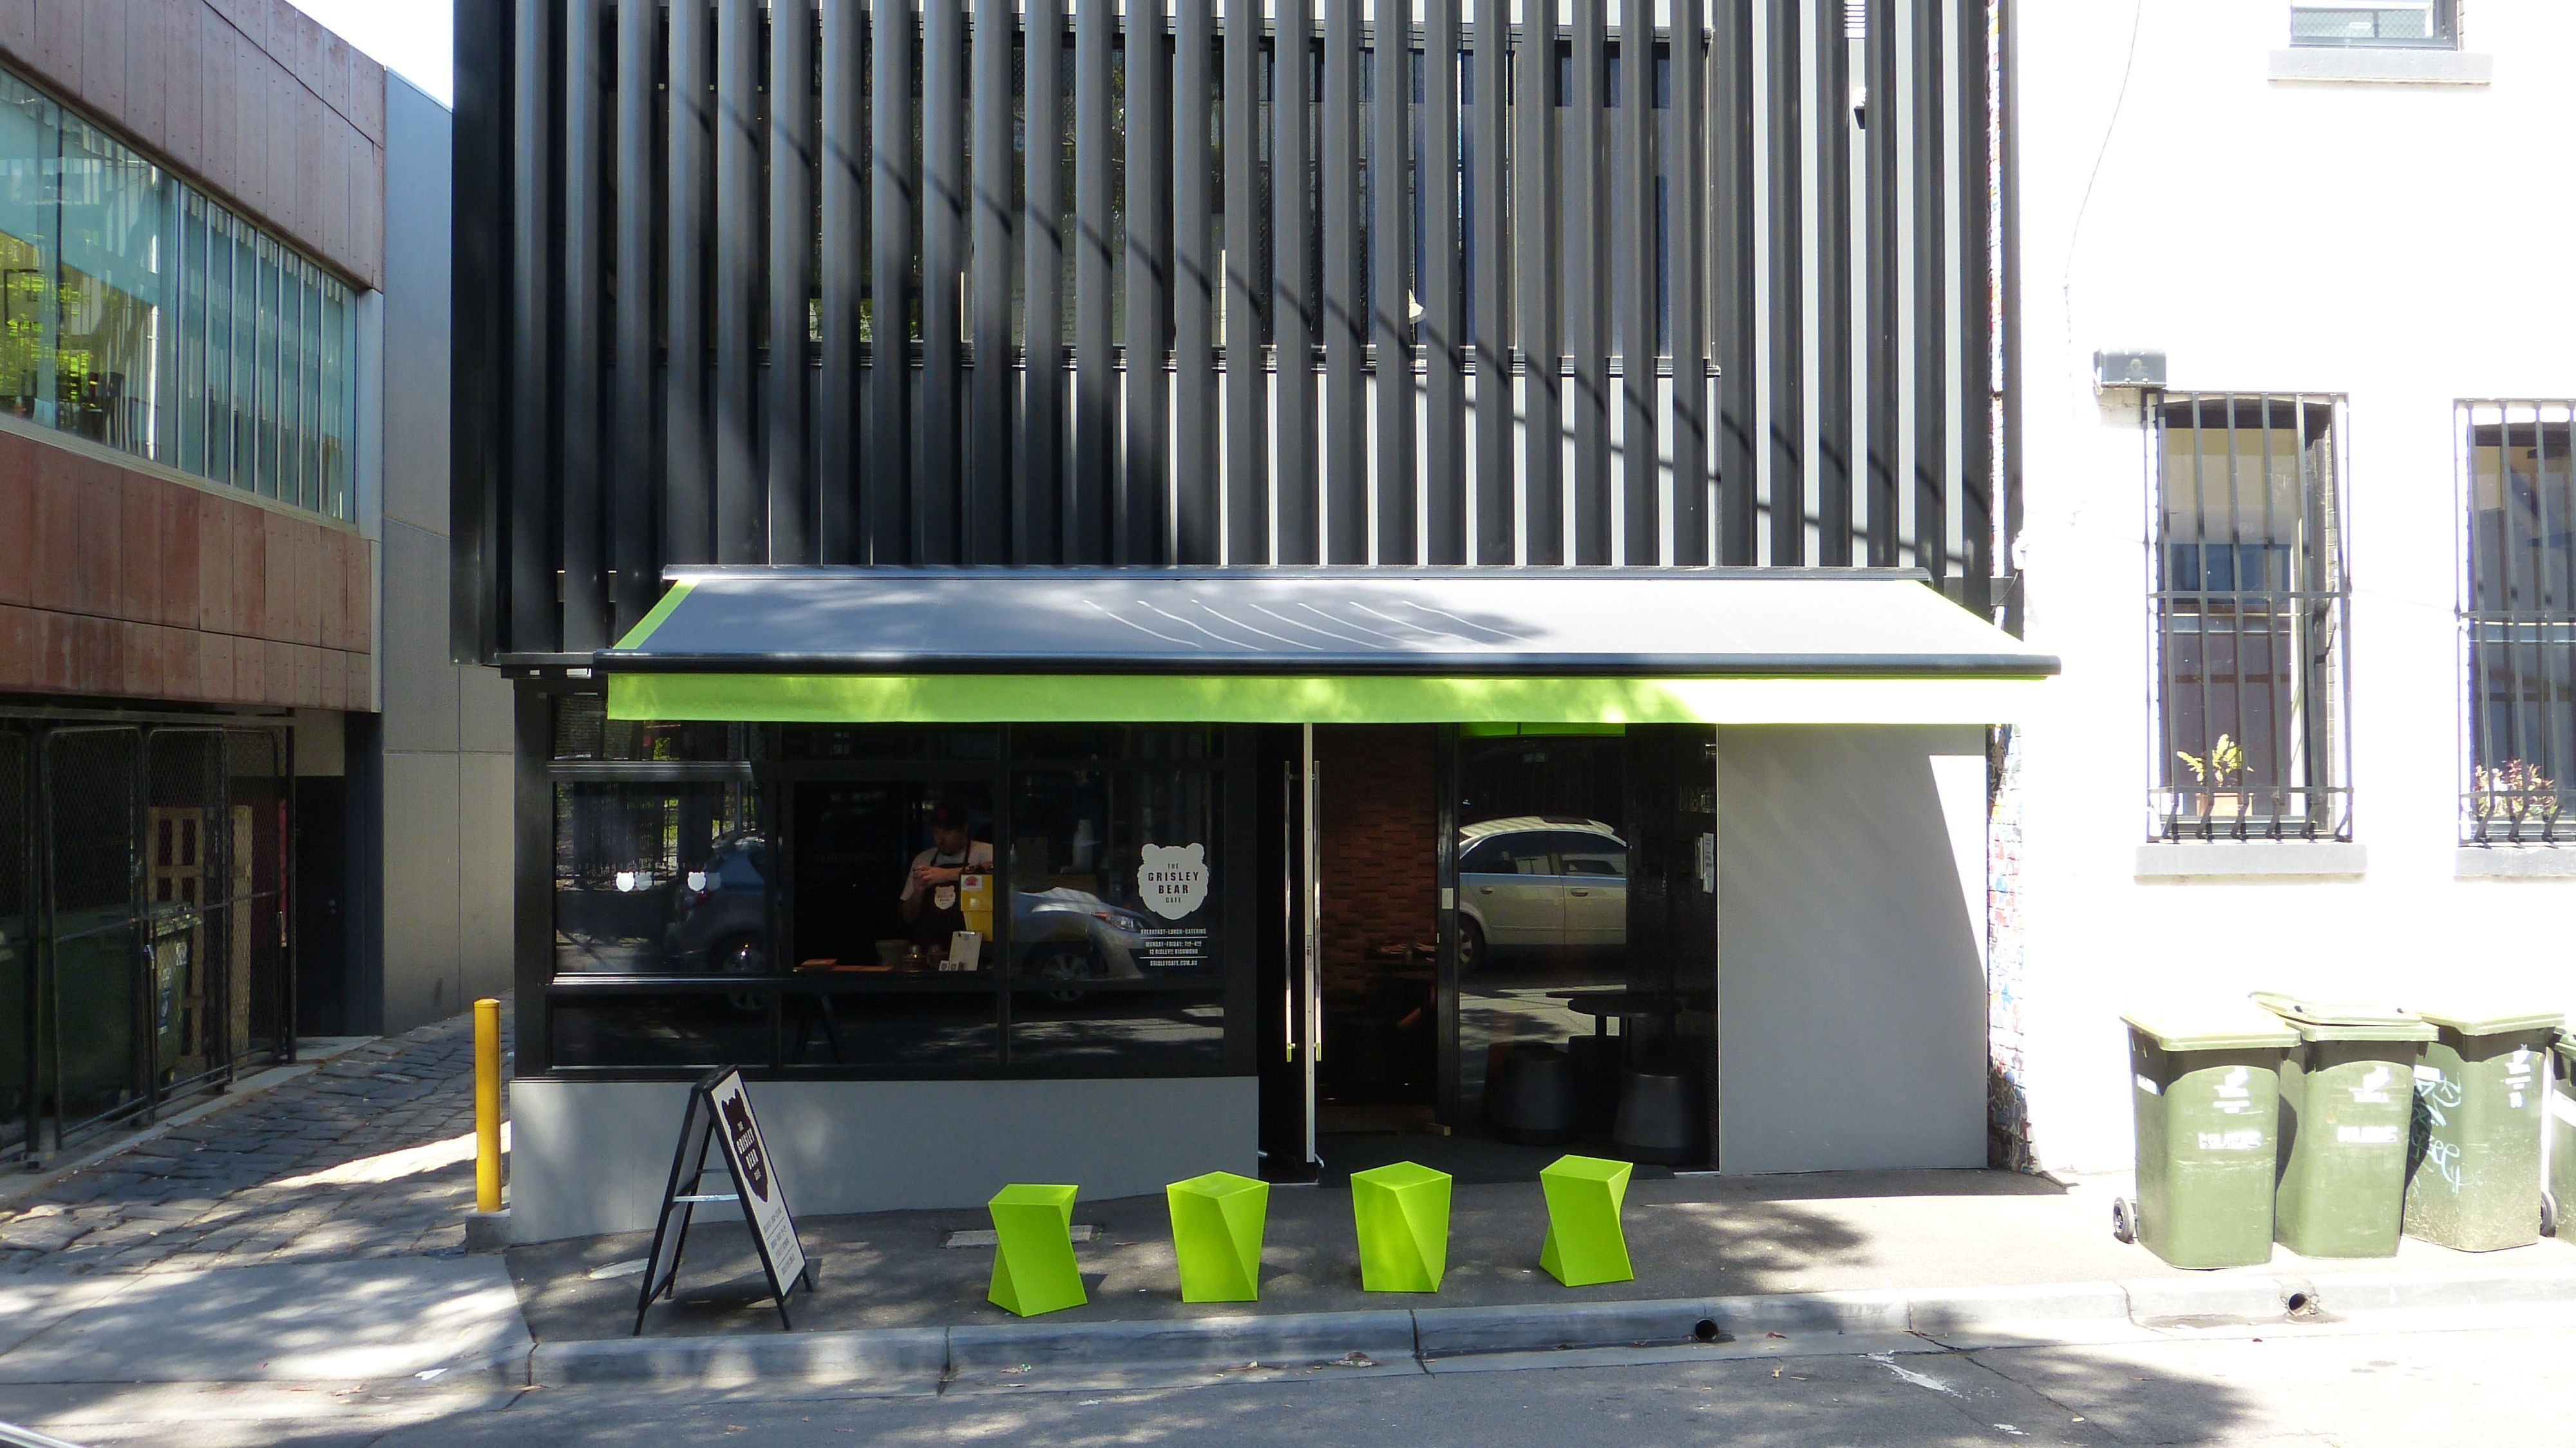 Semi Cassette Folding Arm Awning The Grisley Bear Cafe In Melbourne From The Melbourne Awning Centre Www Me House Blinds Cheap Blinds Vertical Window Blinds